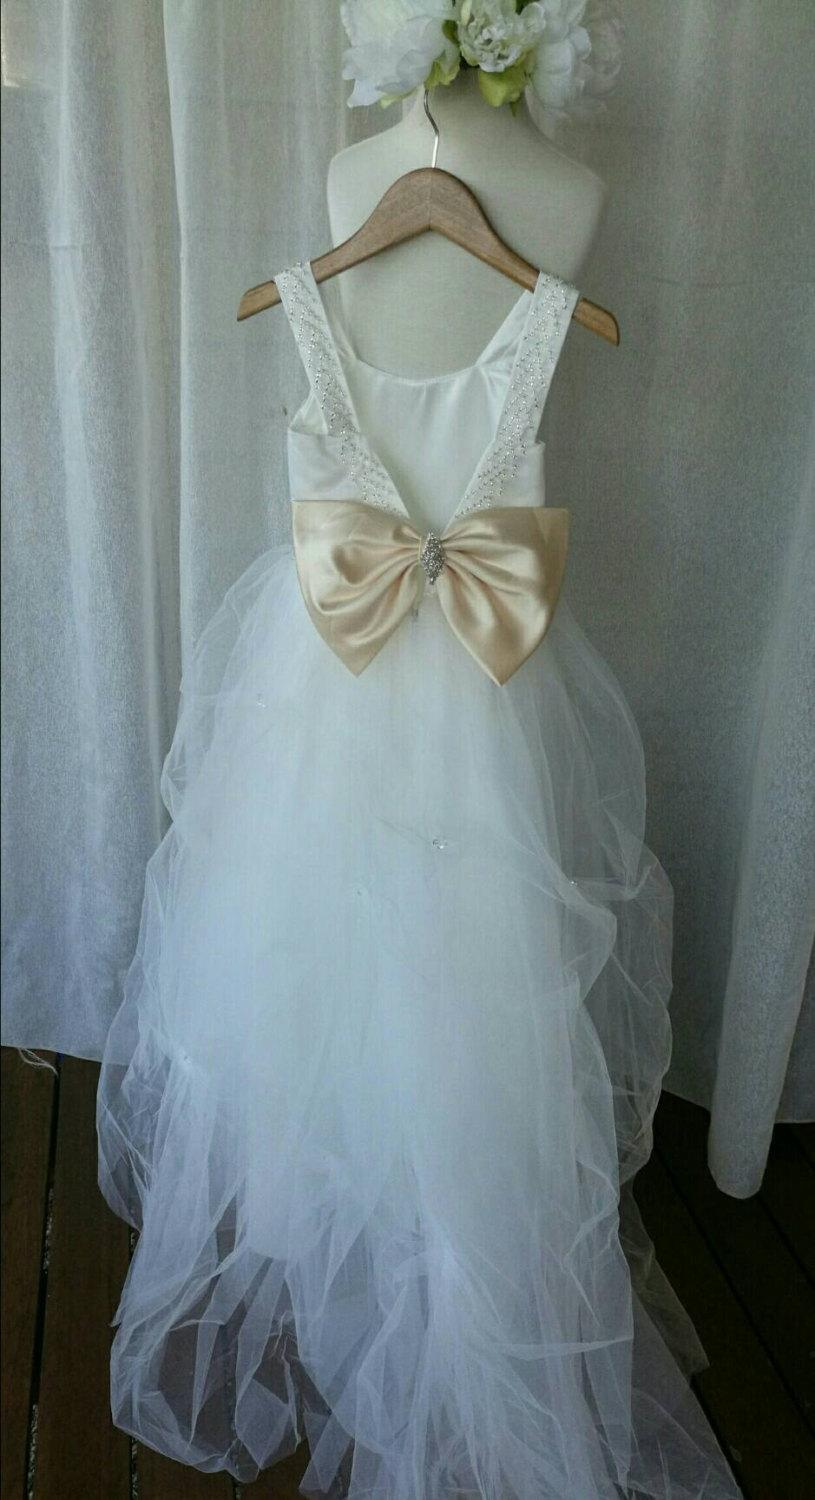 Customized Ivory White Stunning Girls Flower Girl Pageant Special